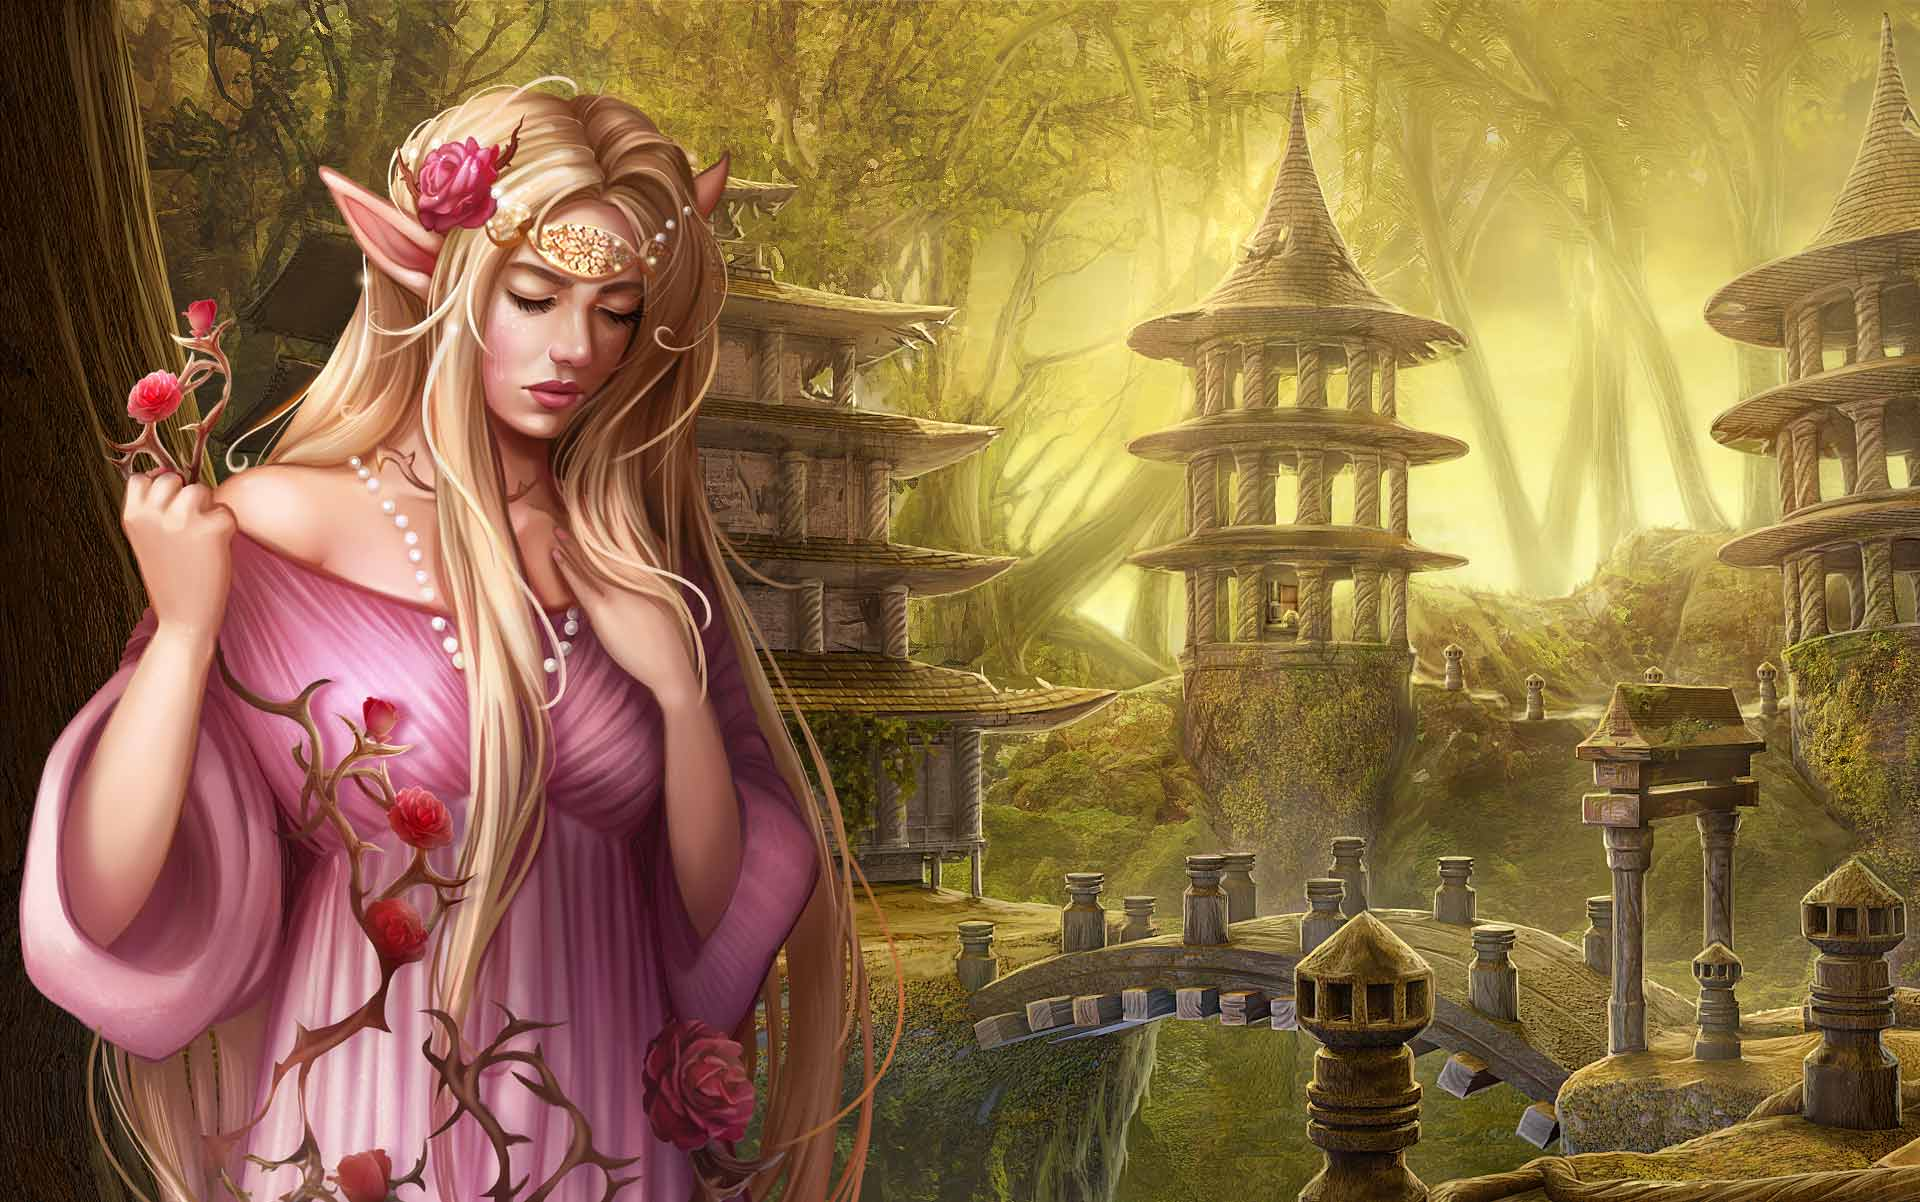 Hunting for Hidden Objects - Classic Hidden Object Games - GameHouse